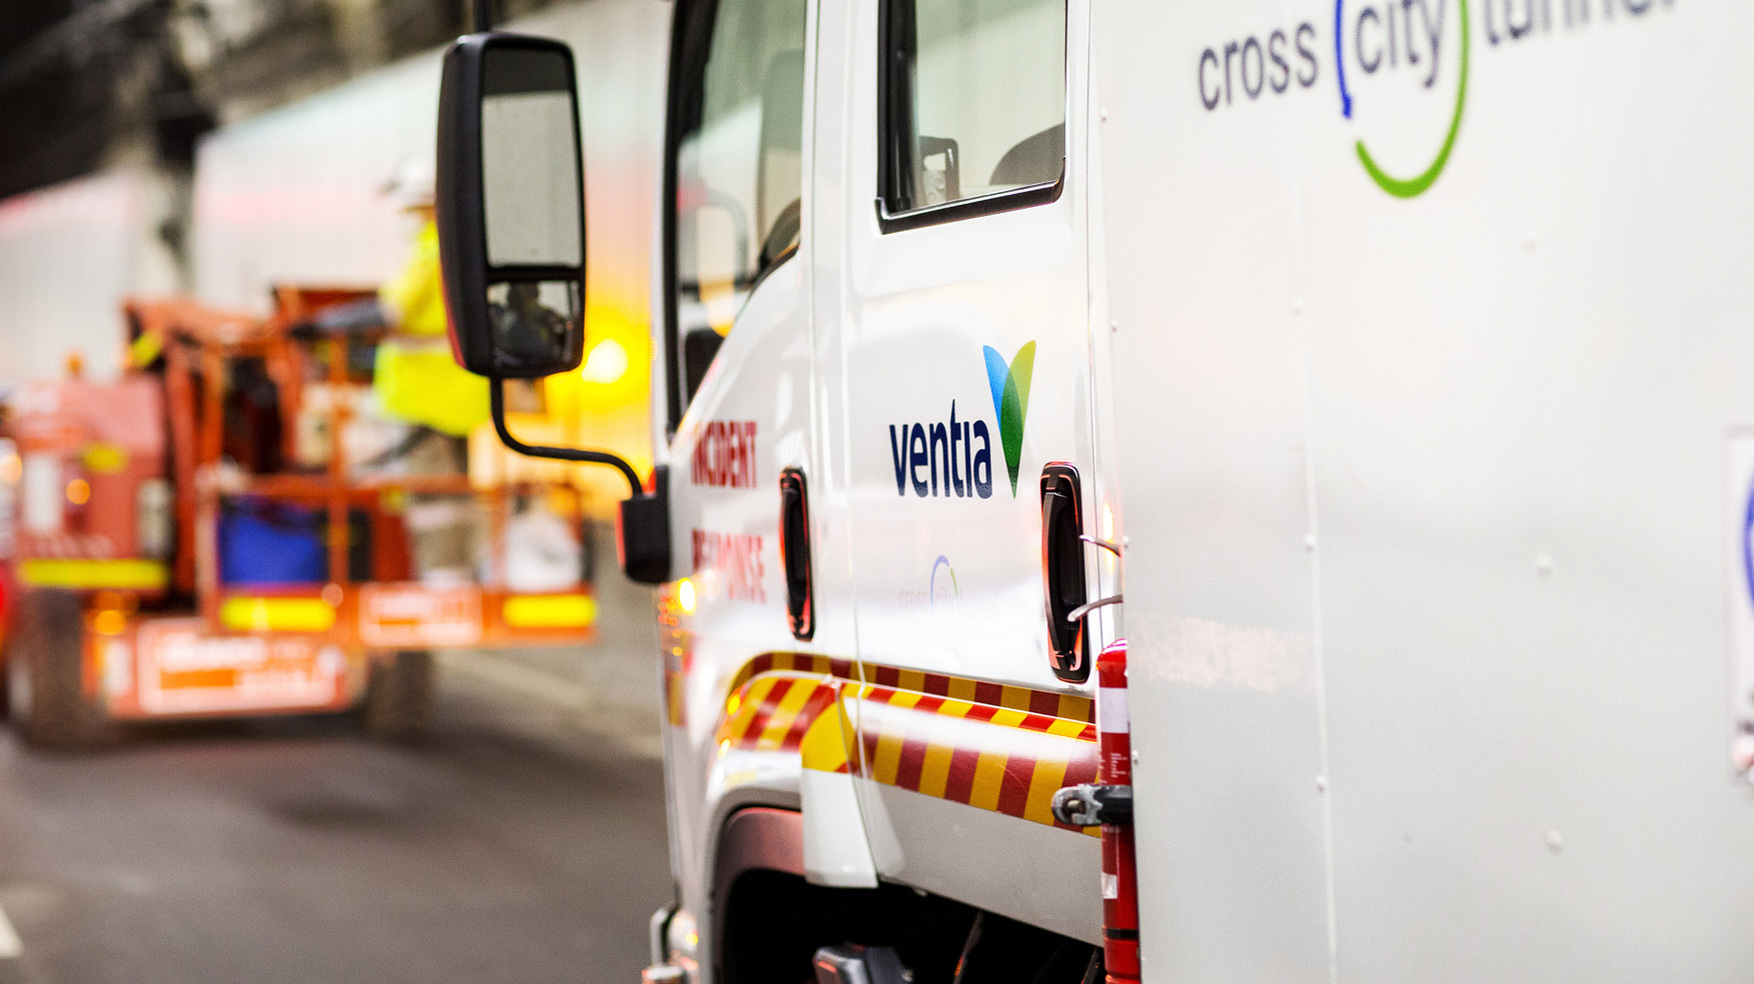 Ventia Cross City Tunnel incident response truck